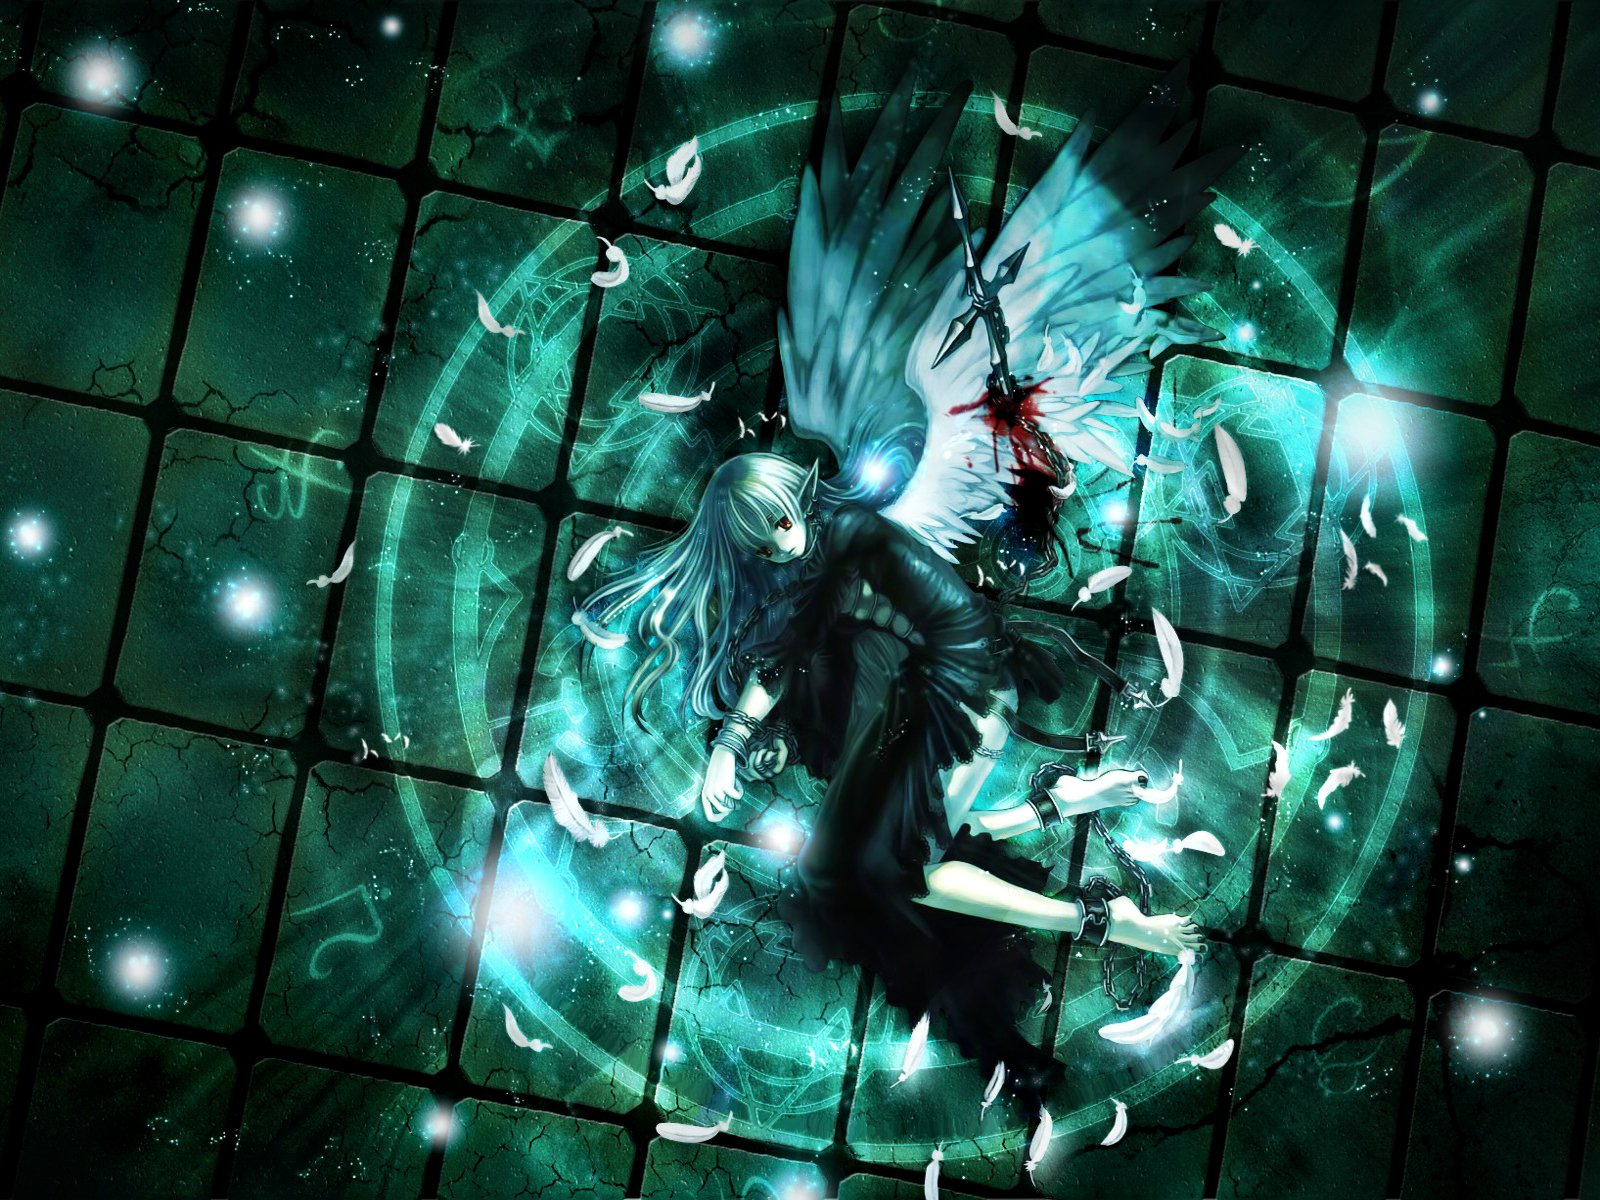 Anime - Original  Oscuro Pluma Wings Fallen Angel Anime Original (Anime) Chica White Hair Red Eyes Fondo de Pantalla